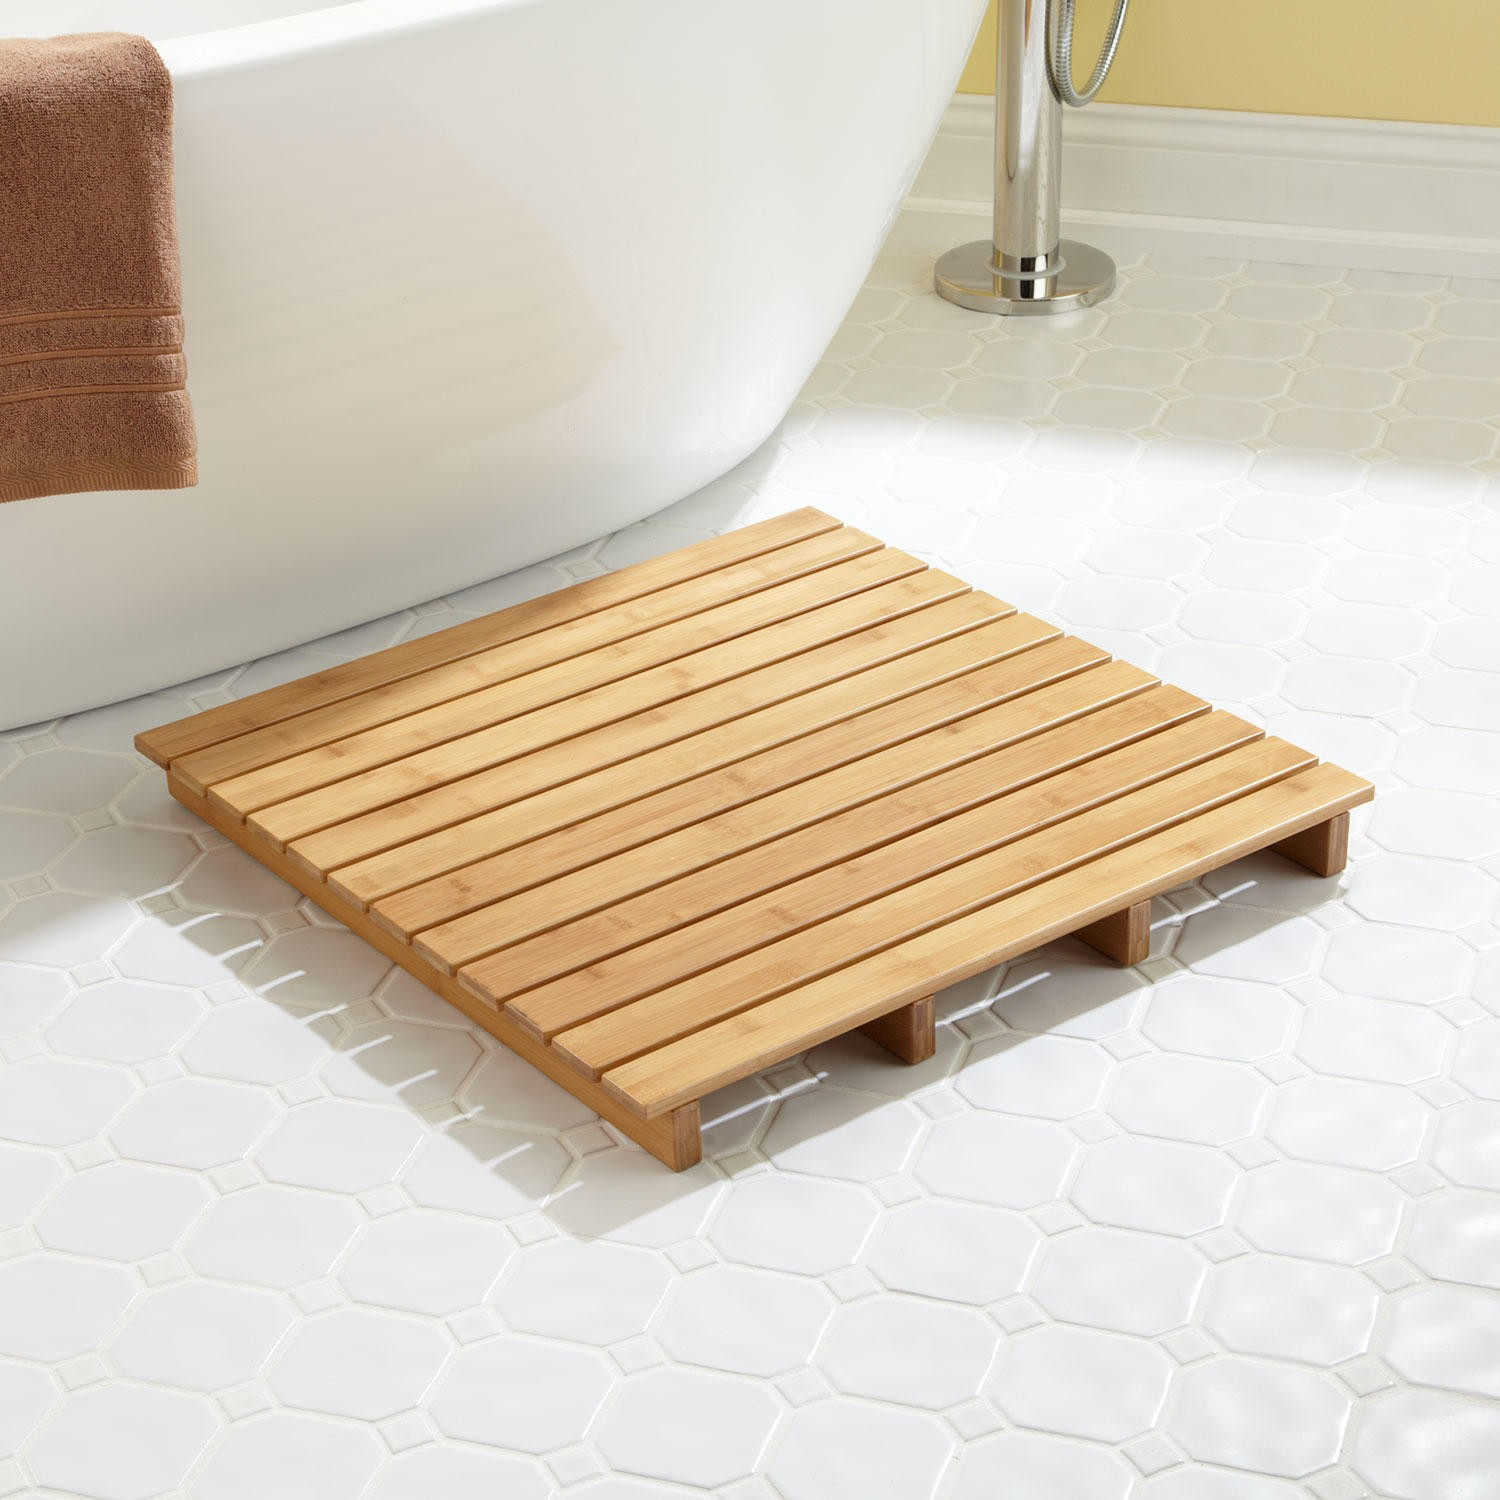 12 Bath Mat Ideas to Make Your Bathroom Feel More Like a Spa